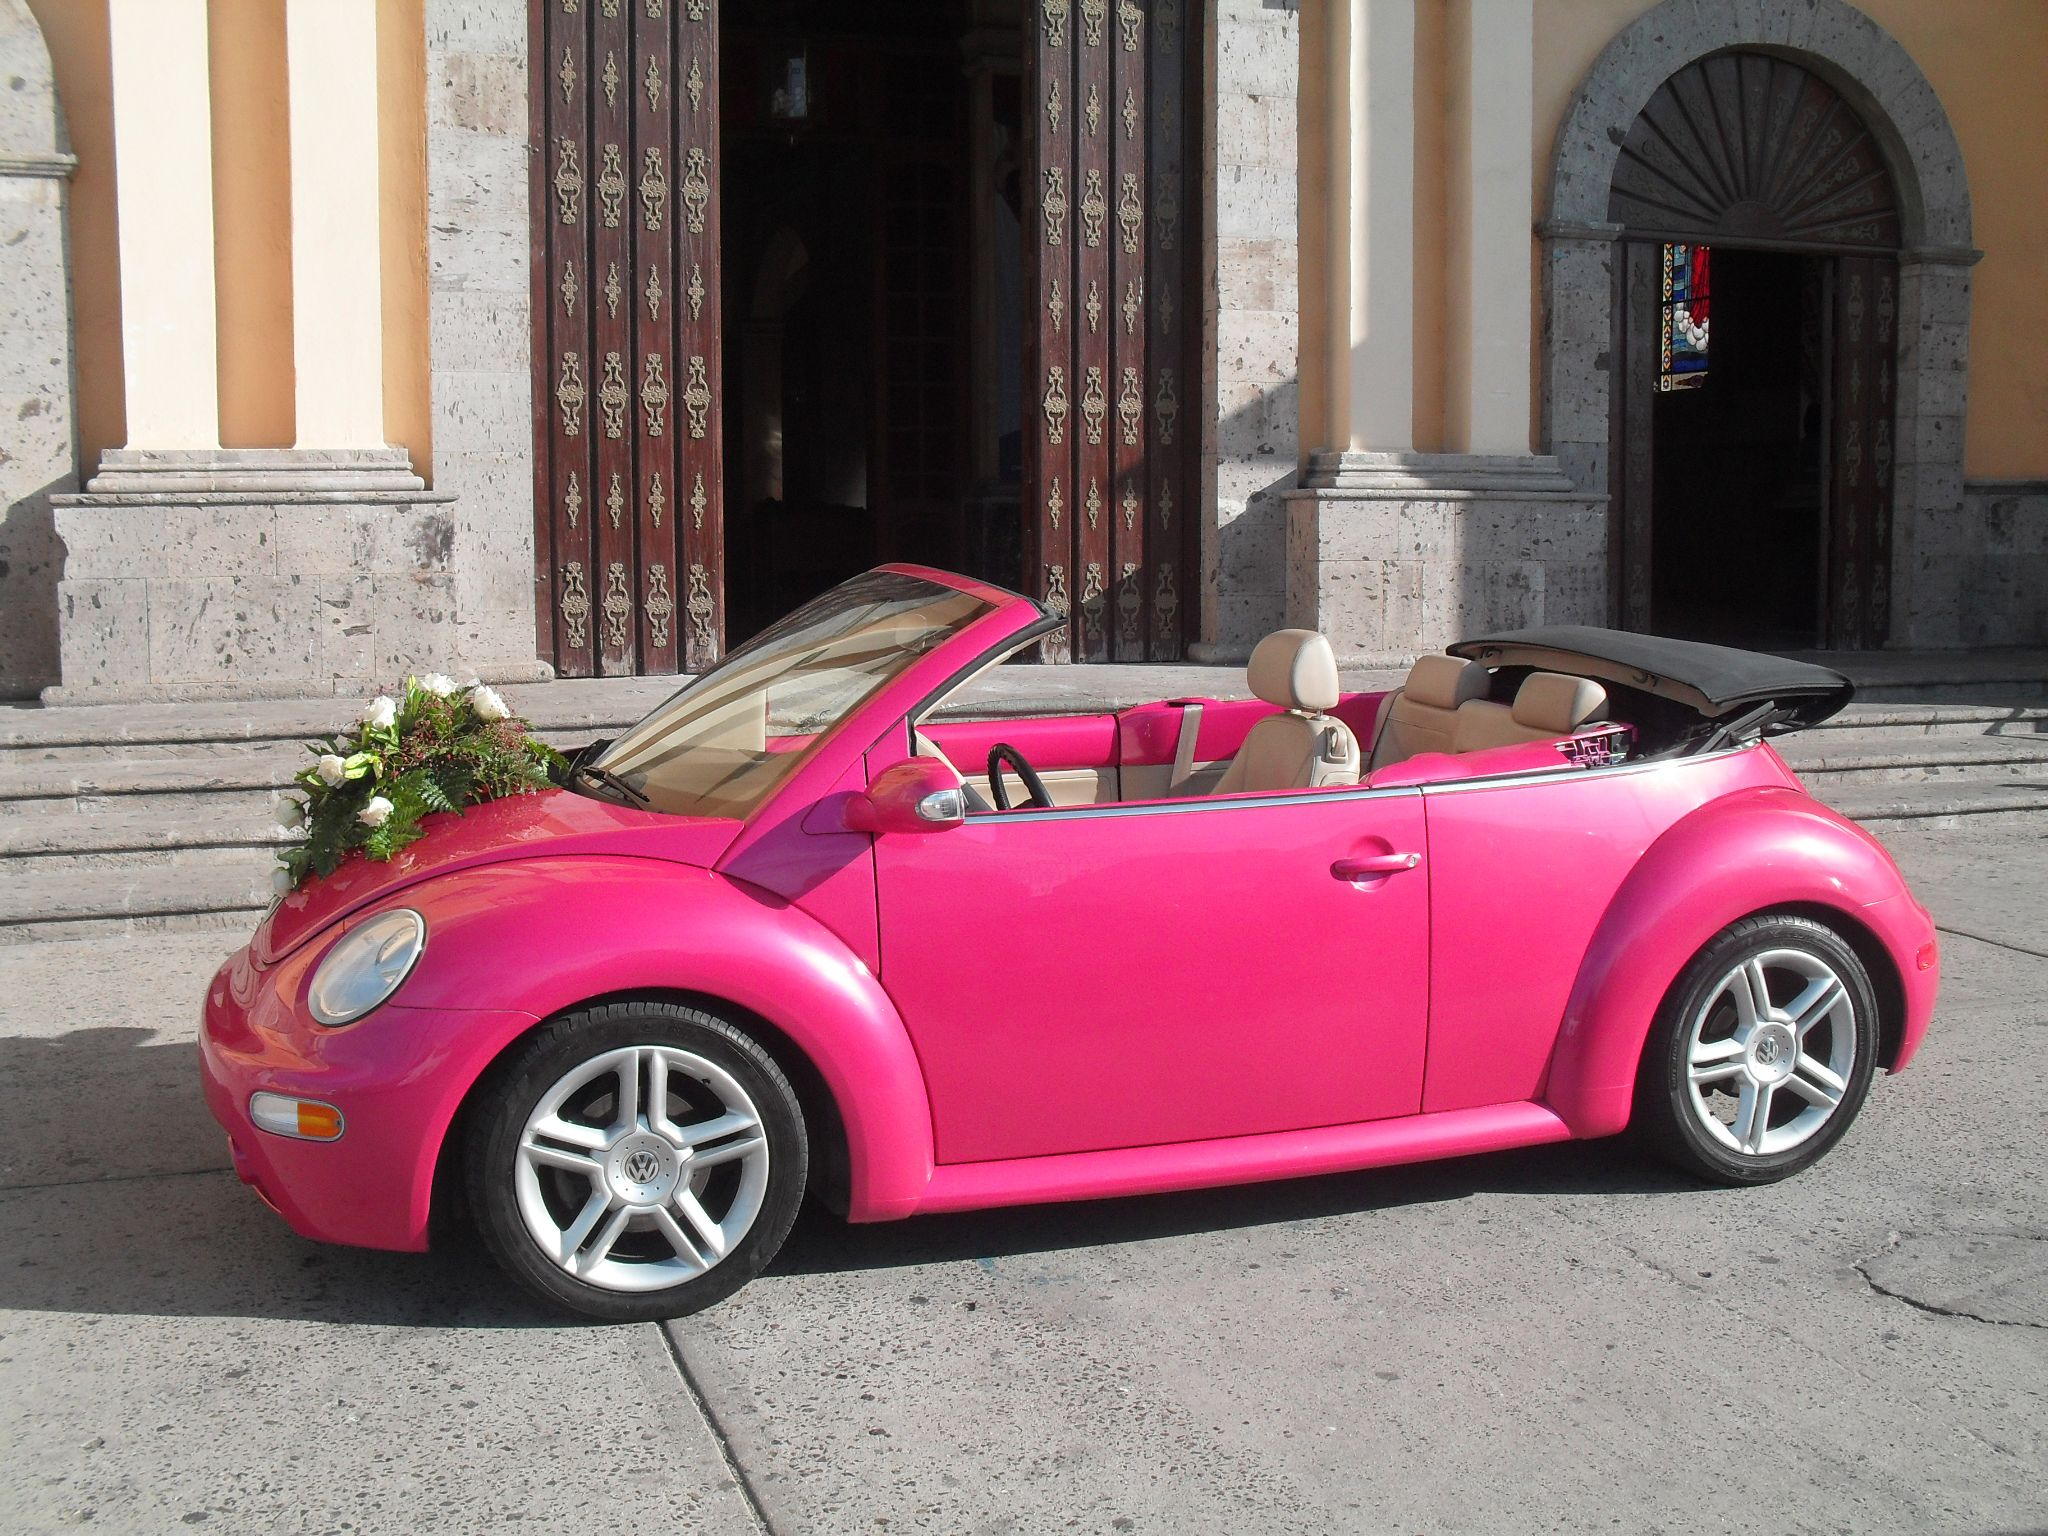 My beautiful pink car vw new beetle convertible d this time it was used